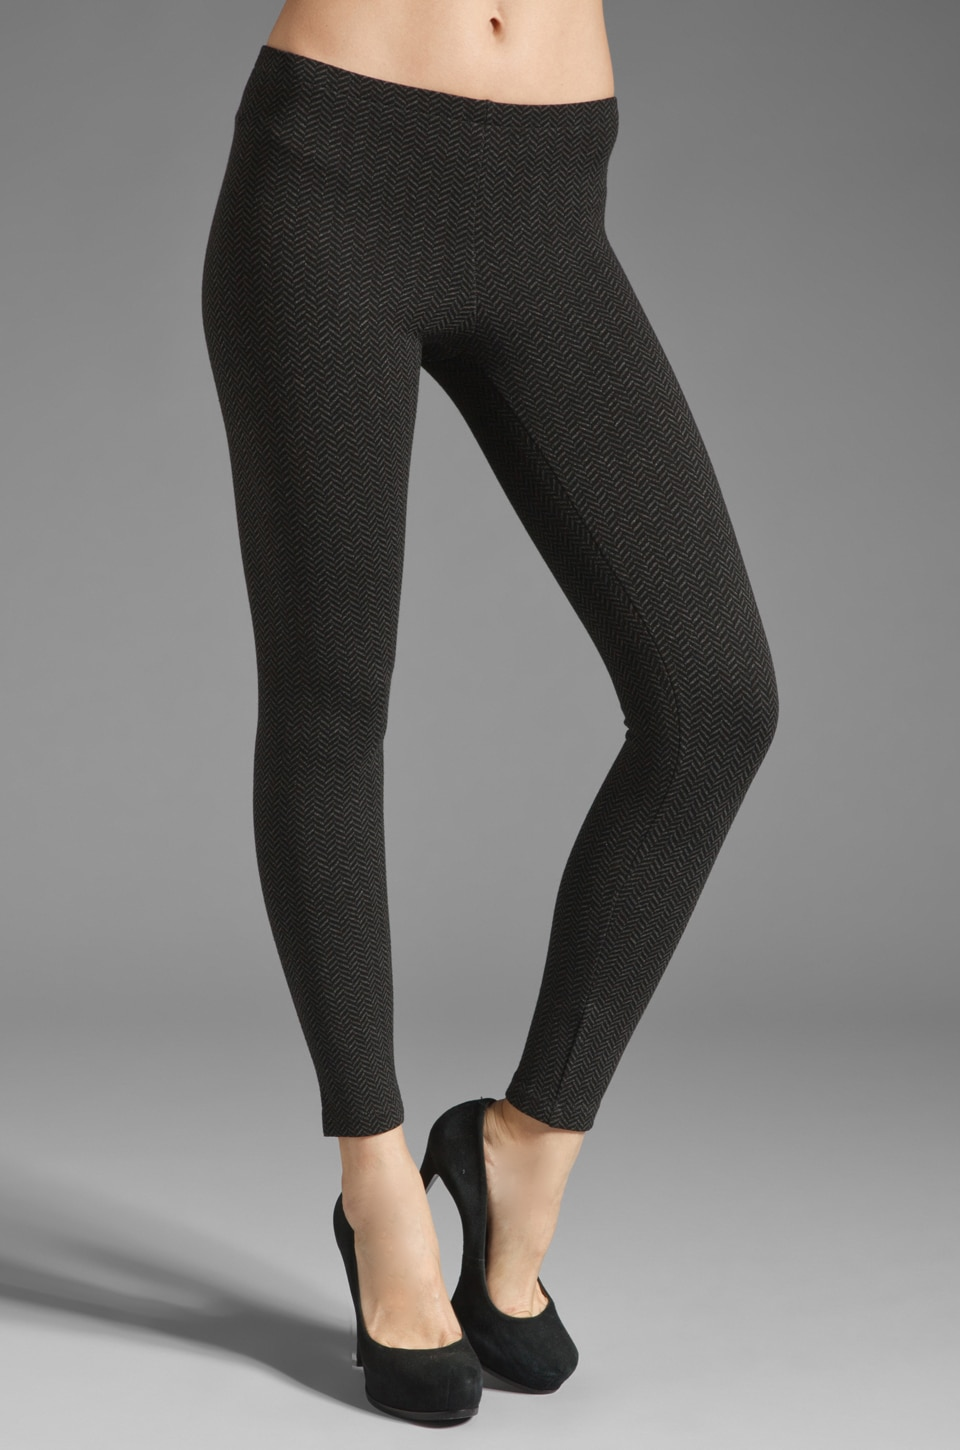 Only Hearts Wishbone Legging in Charcoal